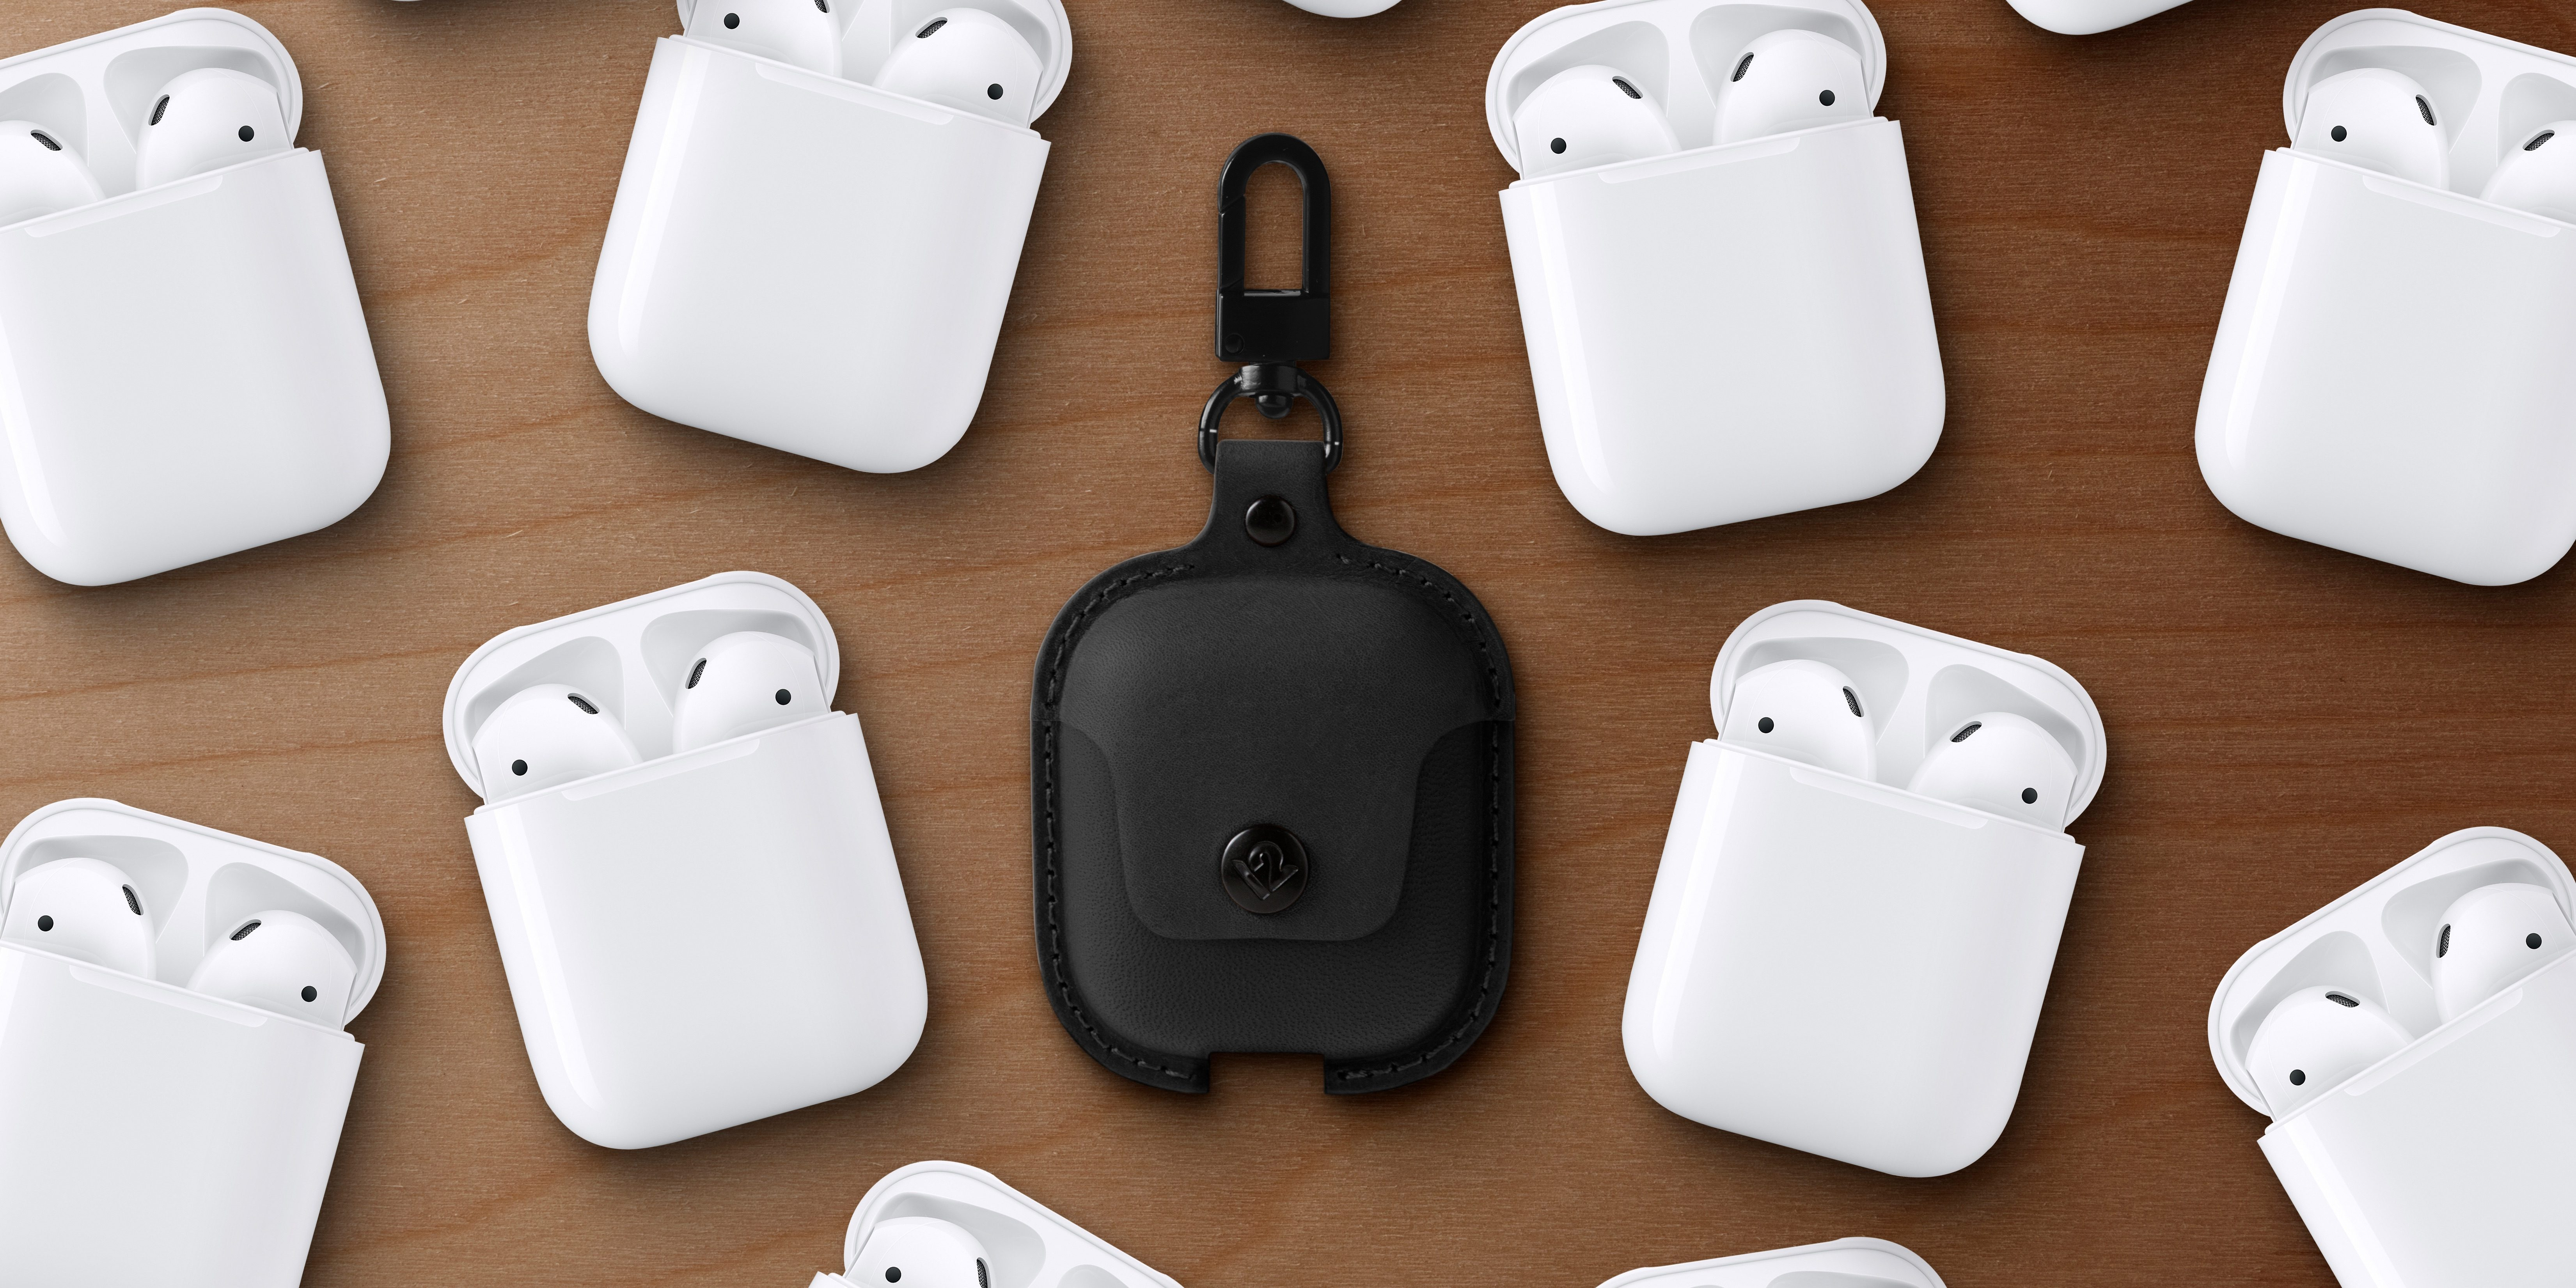 AirSnap by Twelve South secures AirPods to your backpack in stylish leather case